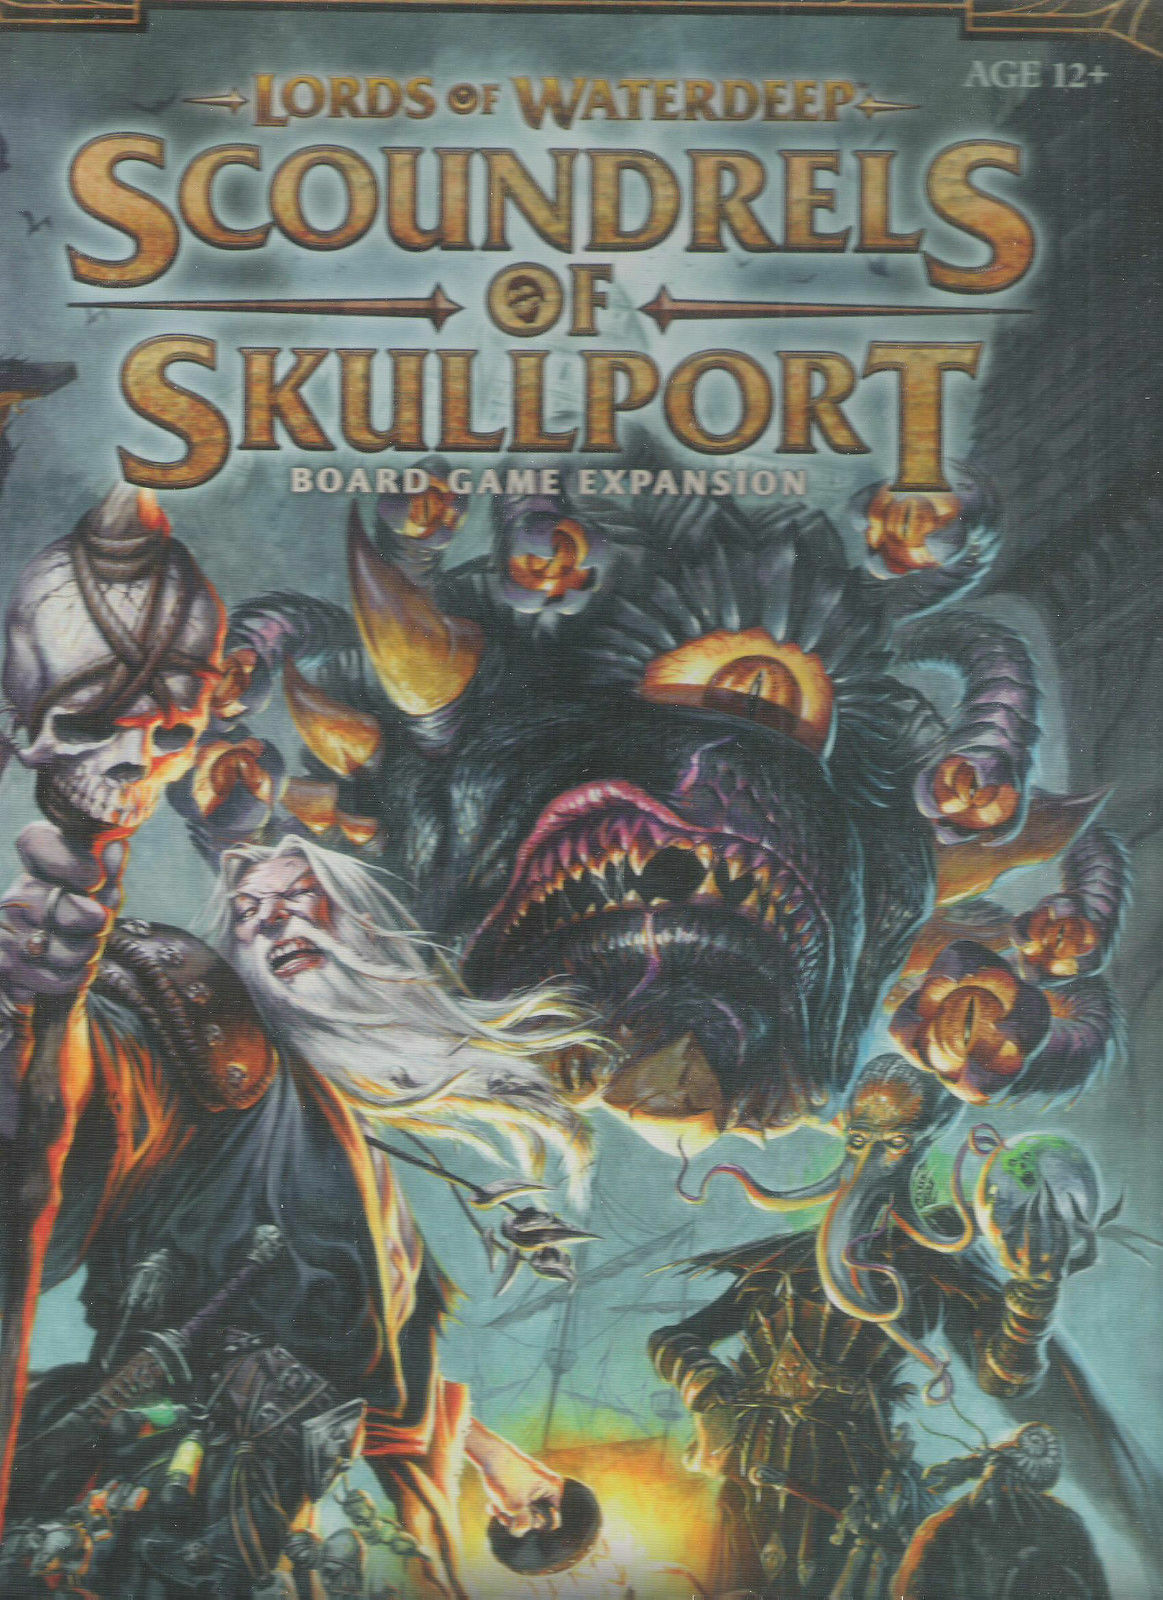 SCOUNDRELS OF SKULLPORT WATERDEEP LORDS EXPASNION DUNGEONS DRAGONS WOTC BOXED